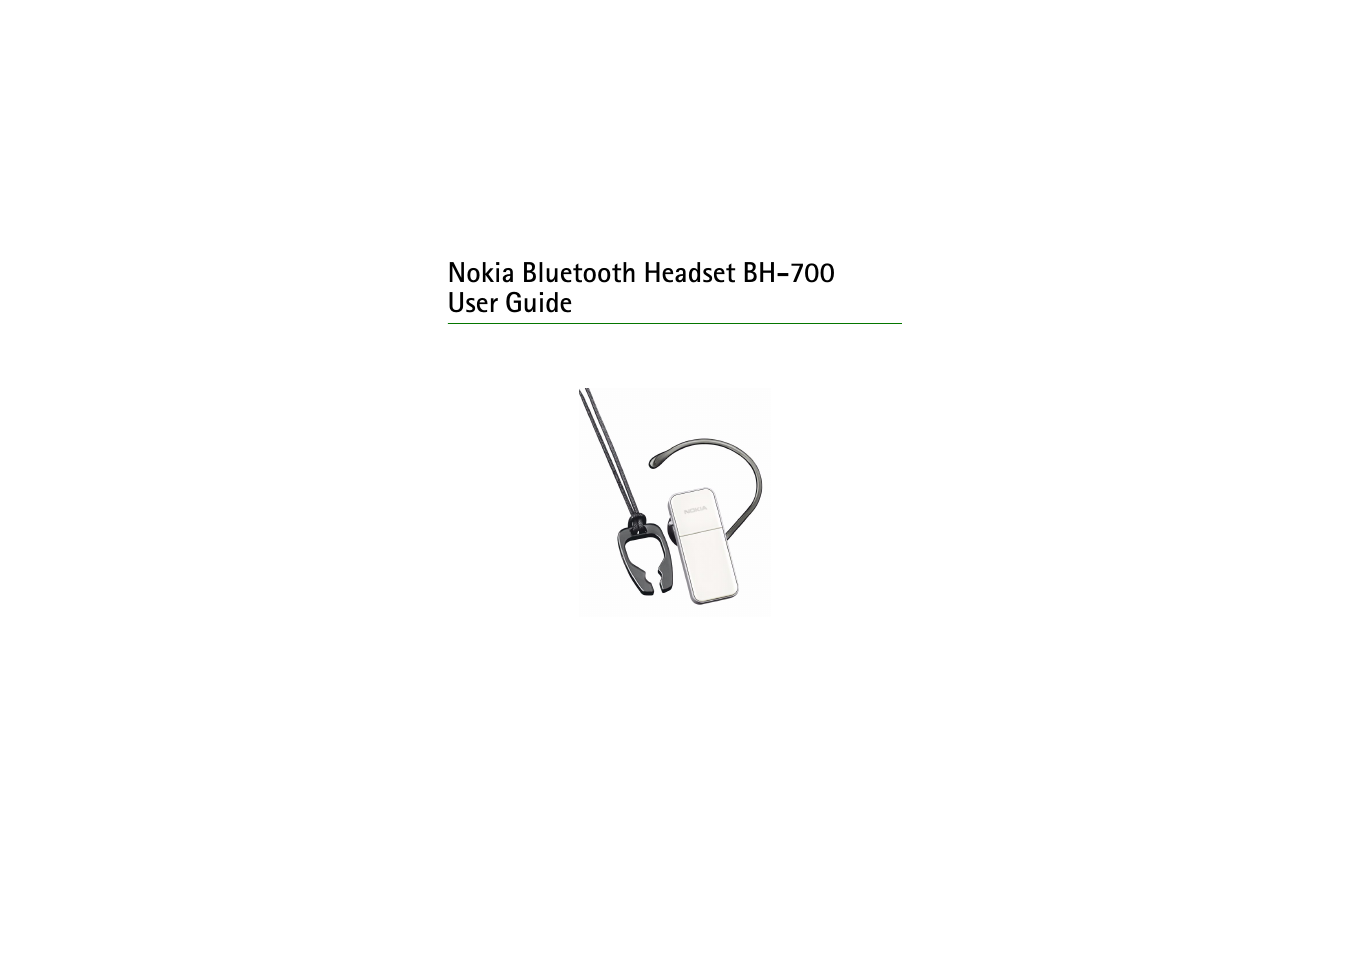 nokia bluetooth headset bh 700 user manual 17 pages rh manualsdir com Nokia NFC Accessories Nokia Bluetooth Manual